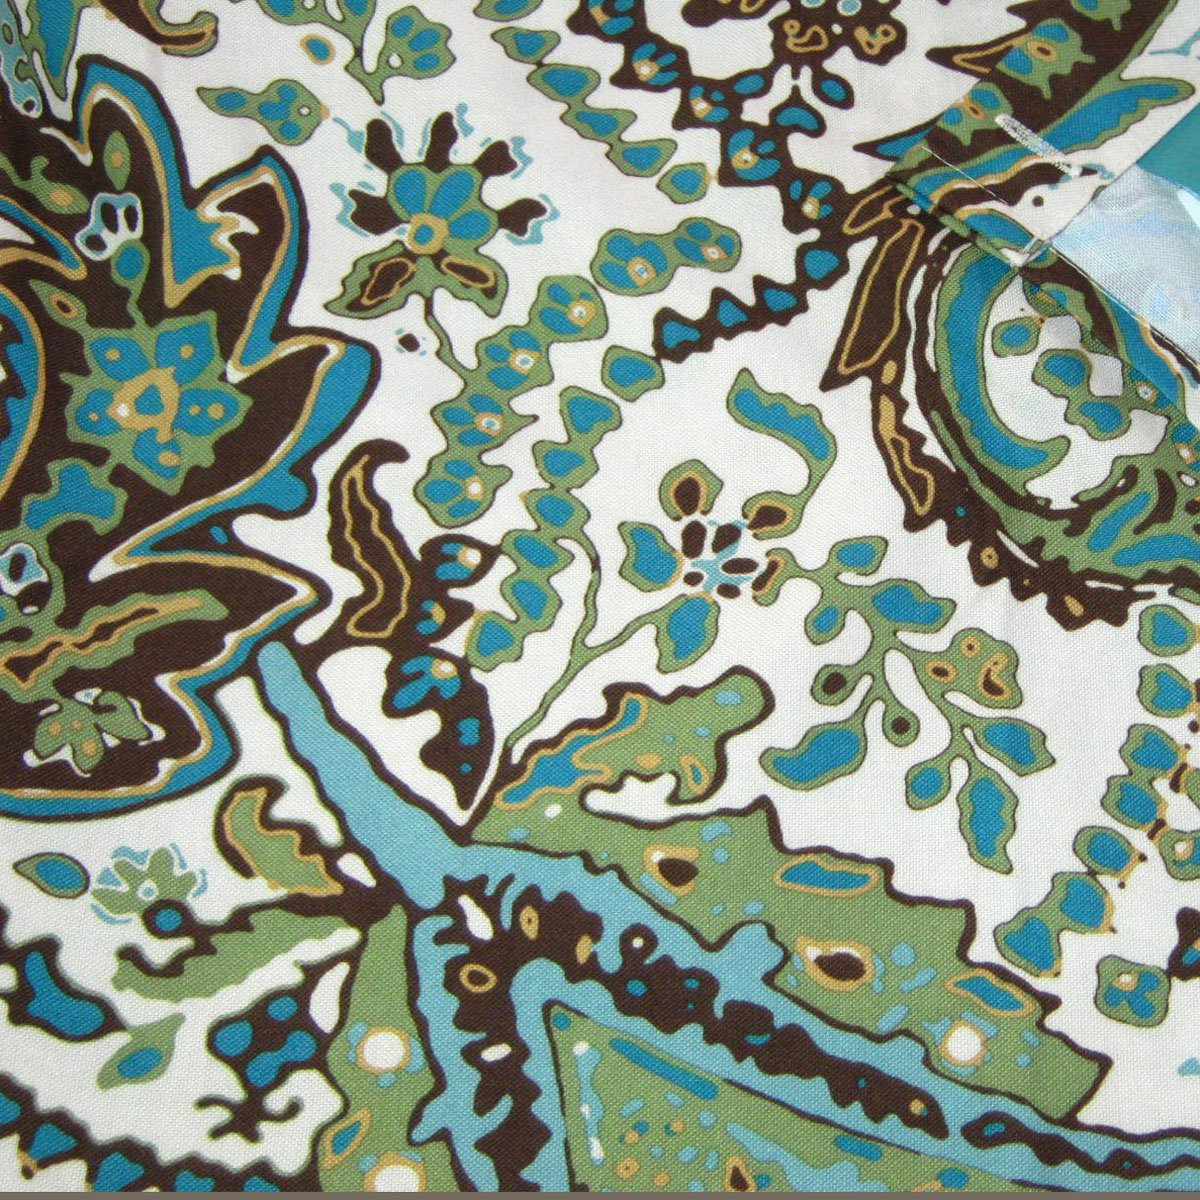 Brown Shower Curtain Target Target Home Blue Green Brown Floral Fabric Shower Curtain